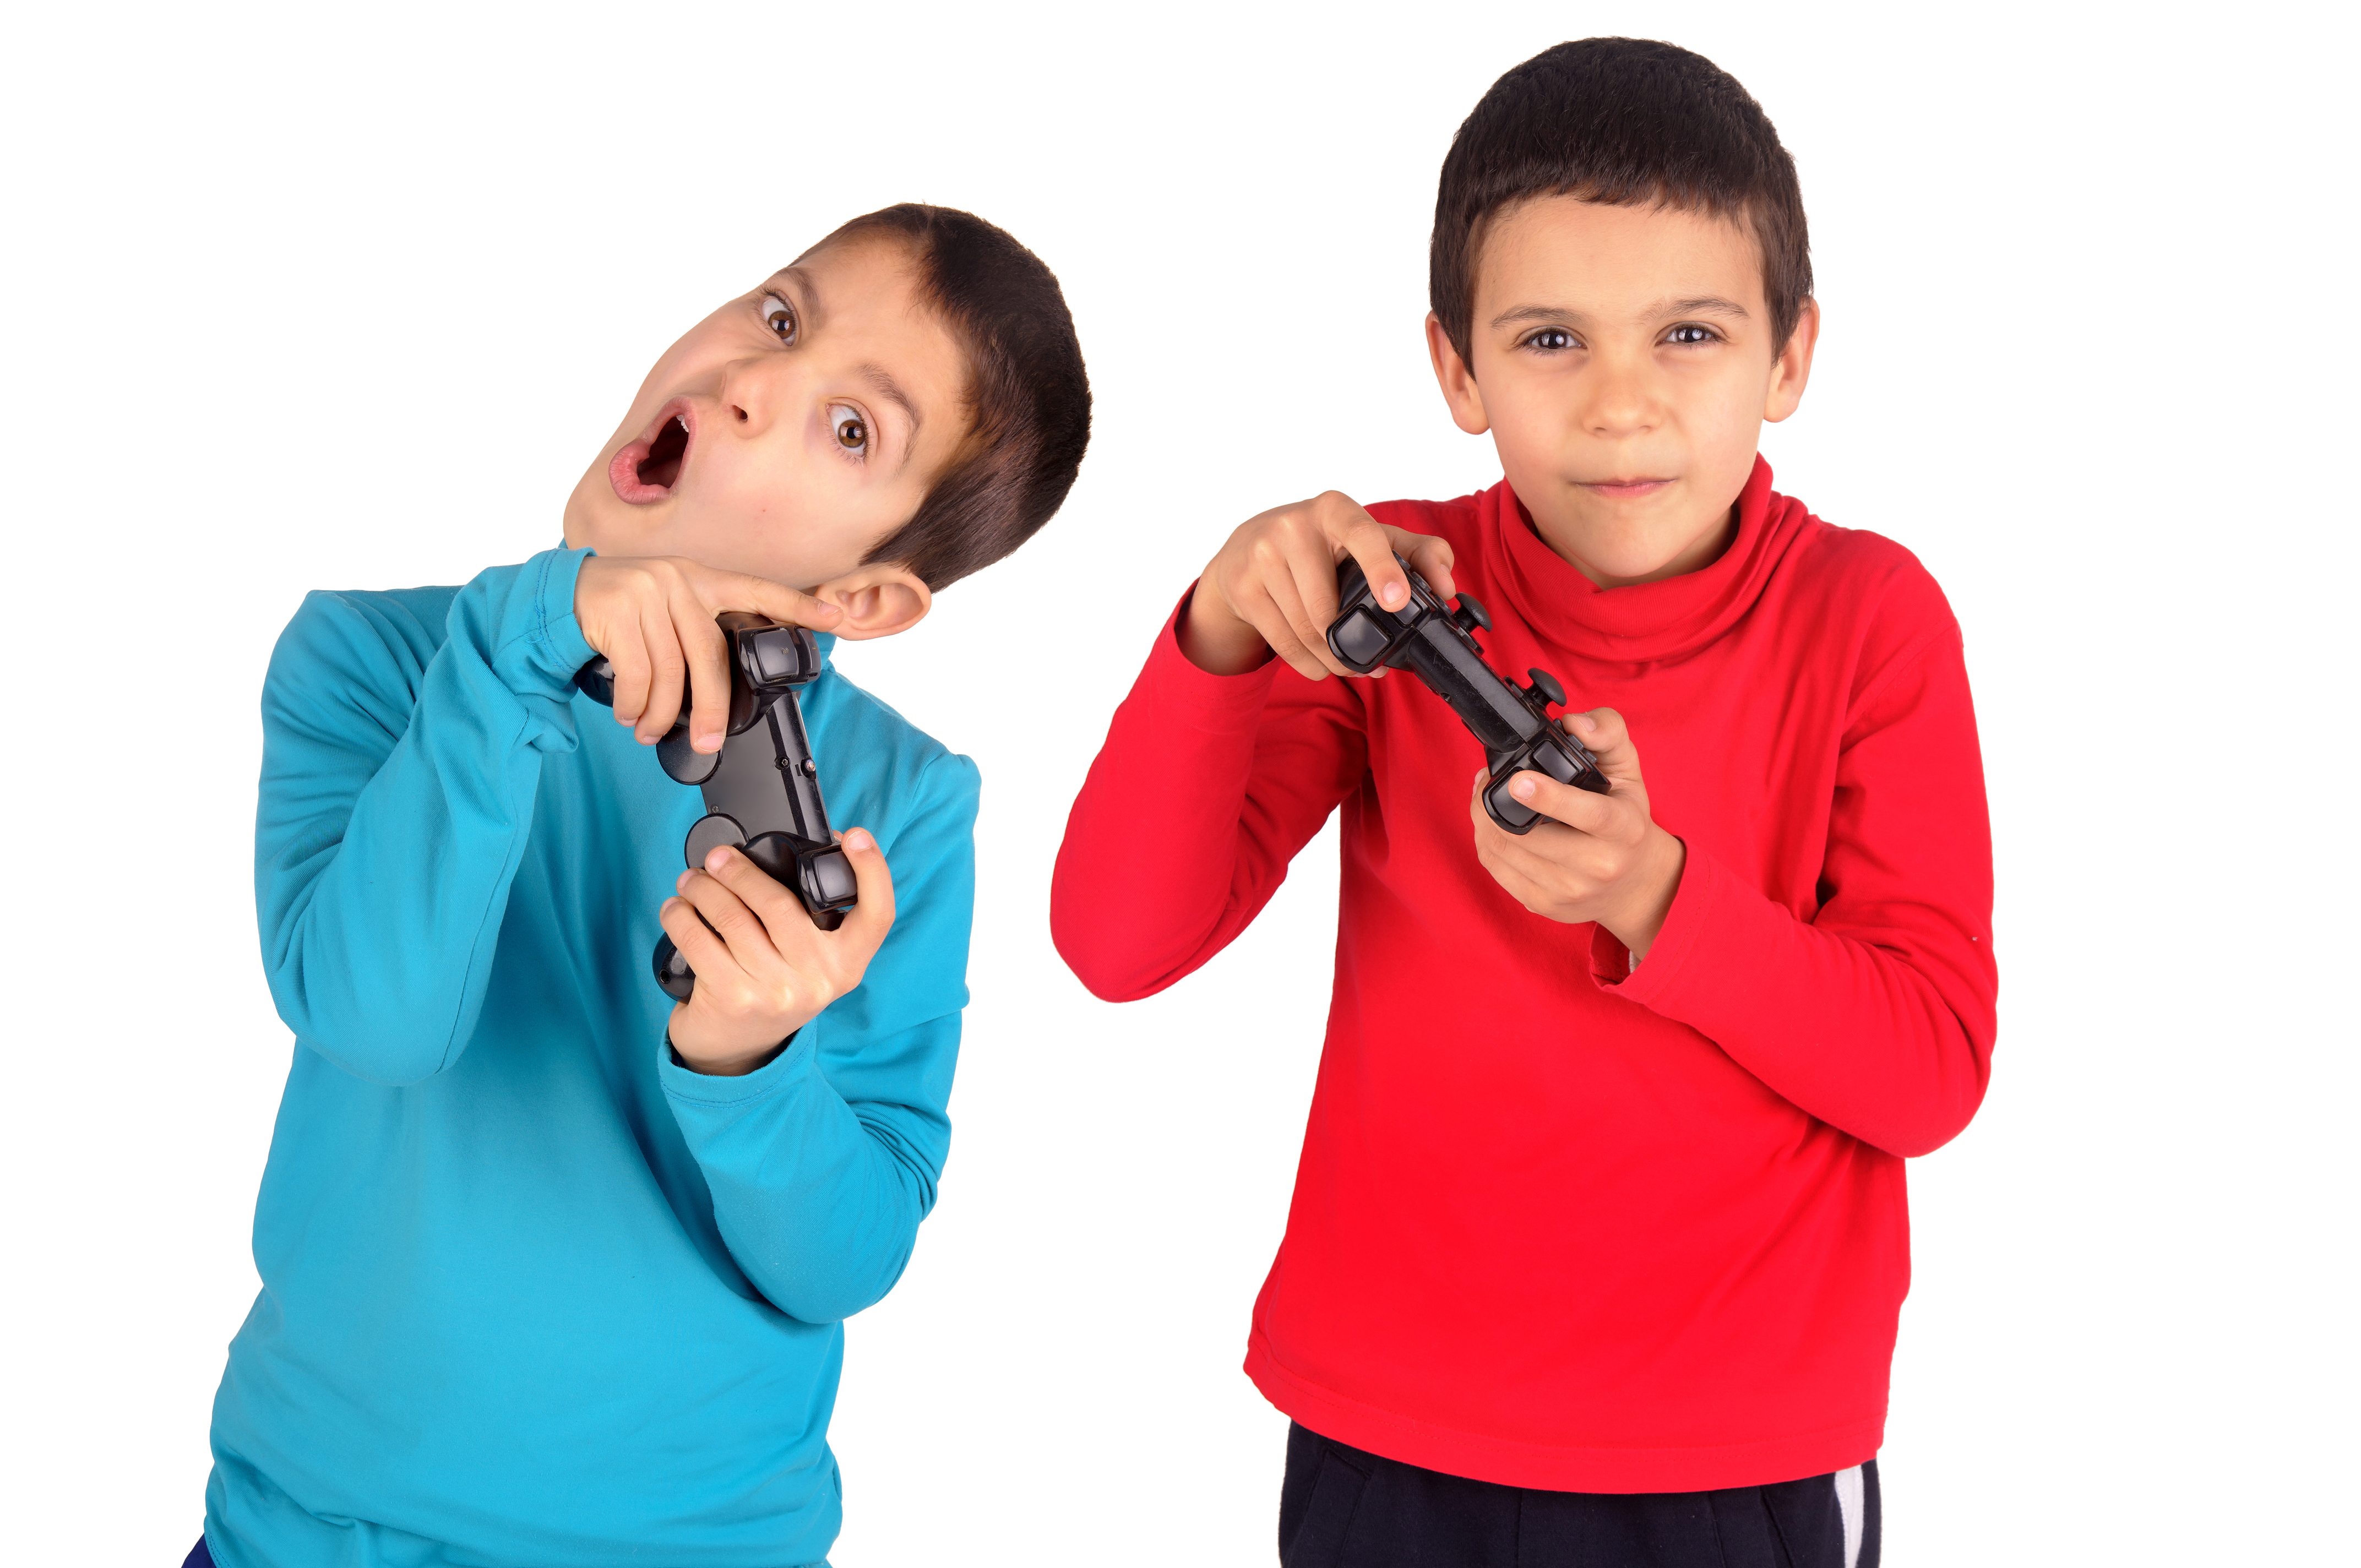 Video Games Can Make Kids More Active, Along With Weight ...